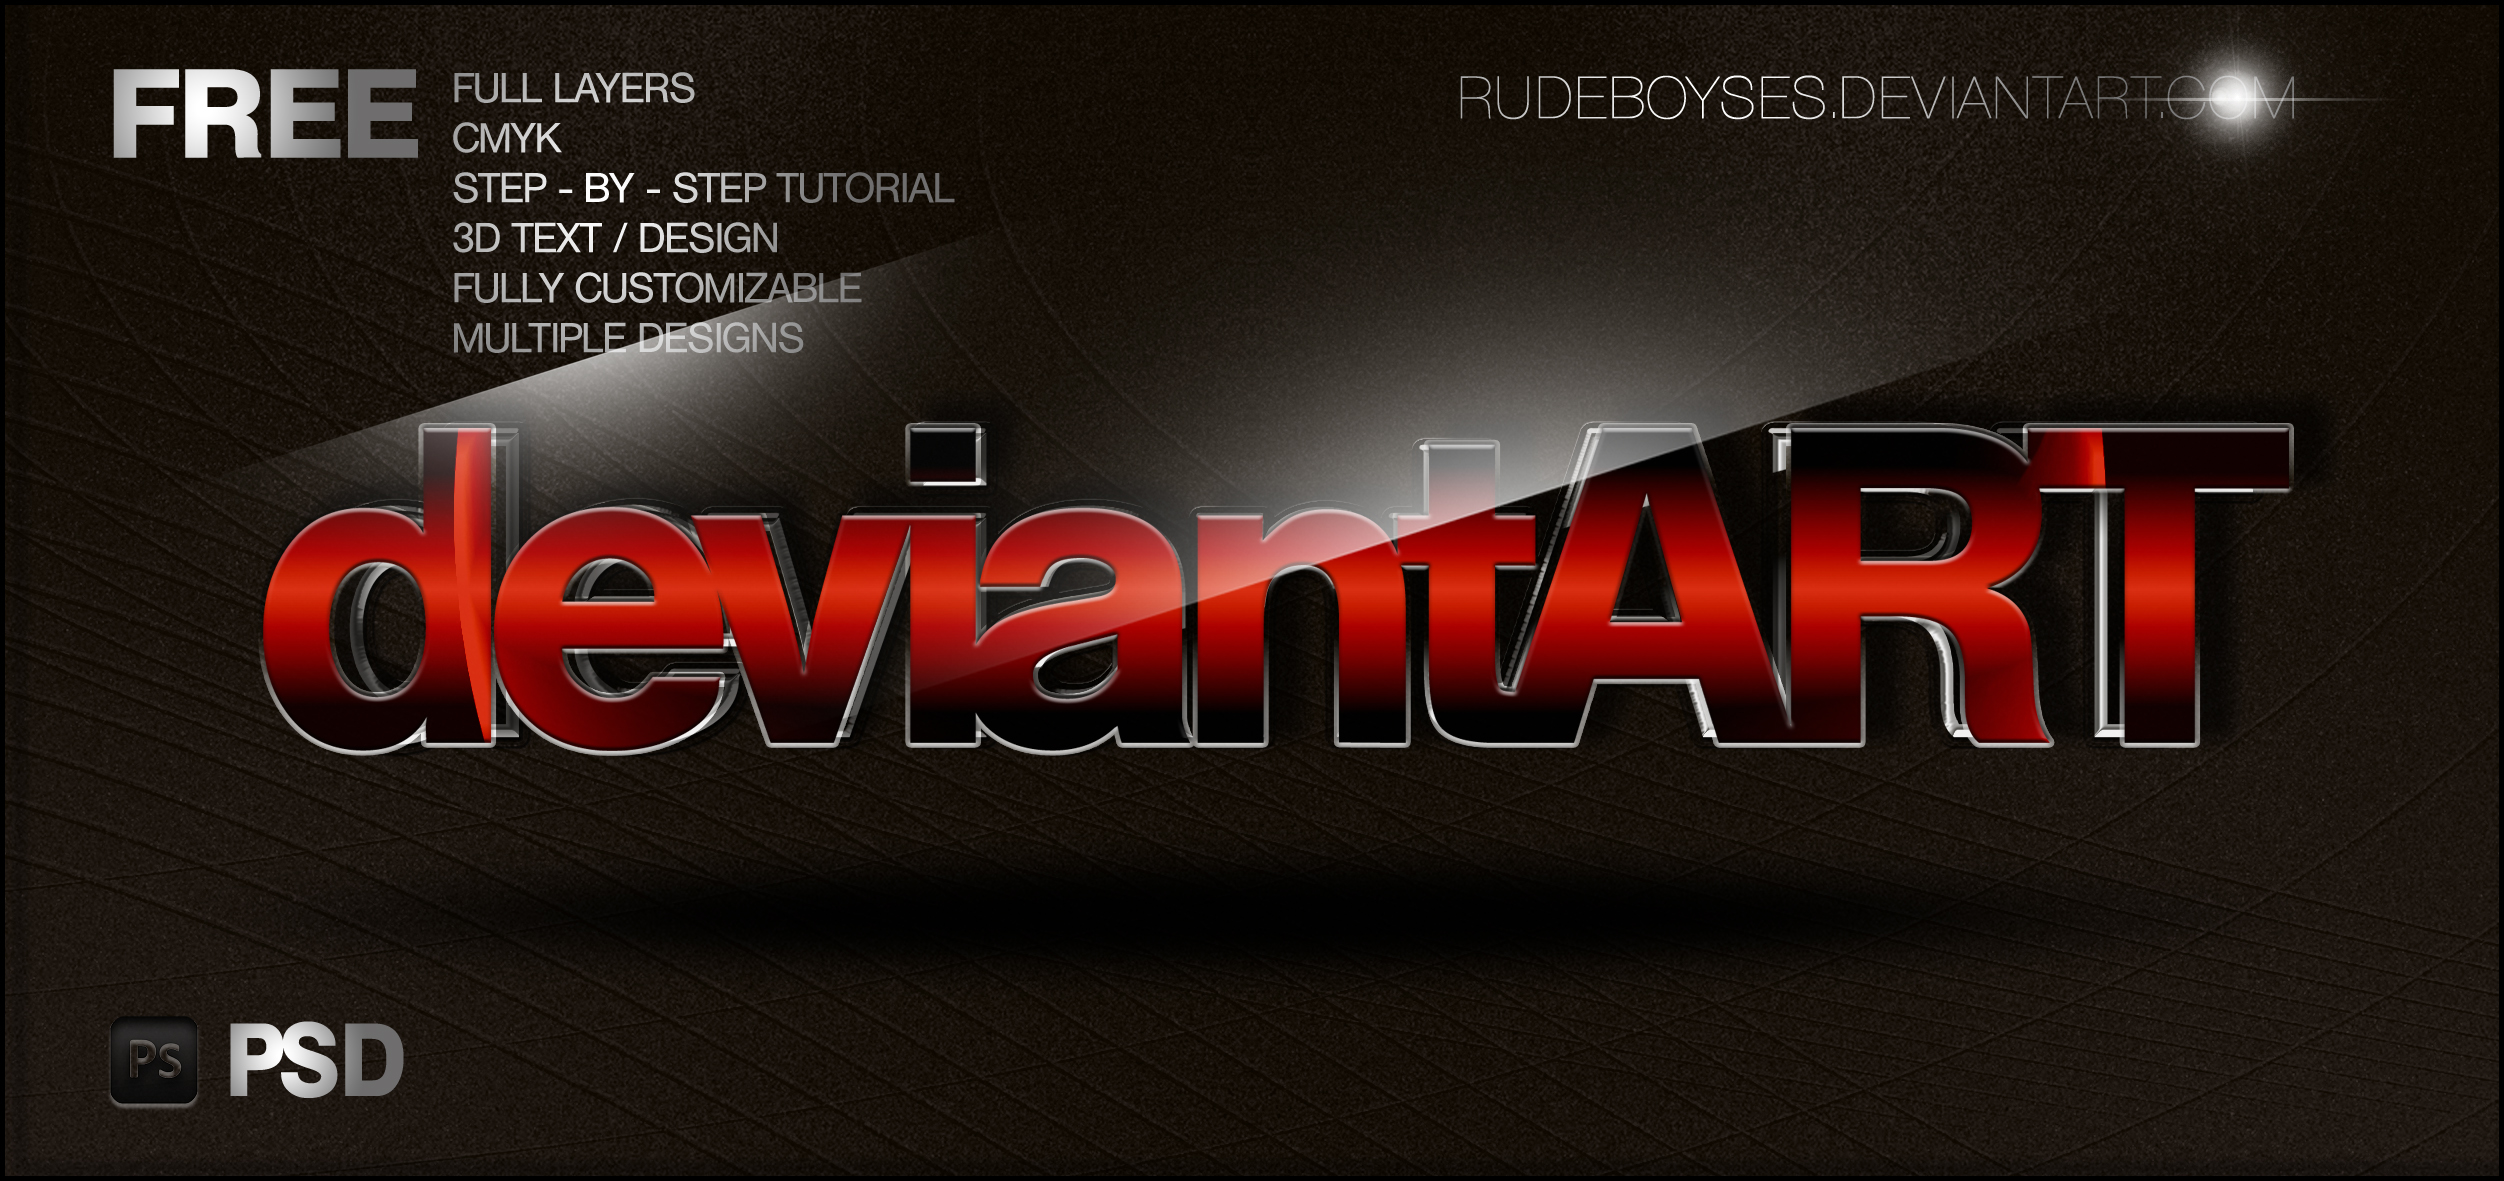 Photoshop 3d text psd file free download | 23 Free Text